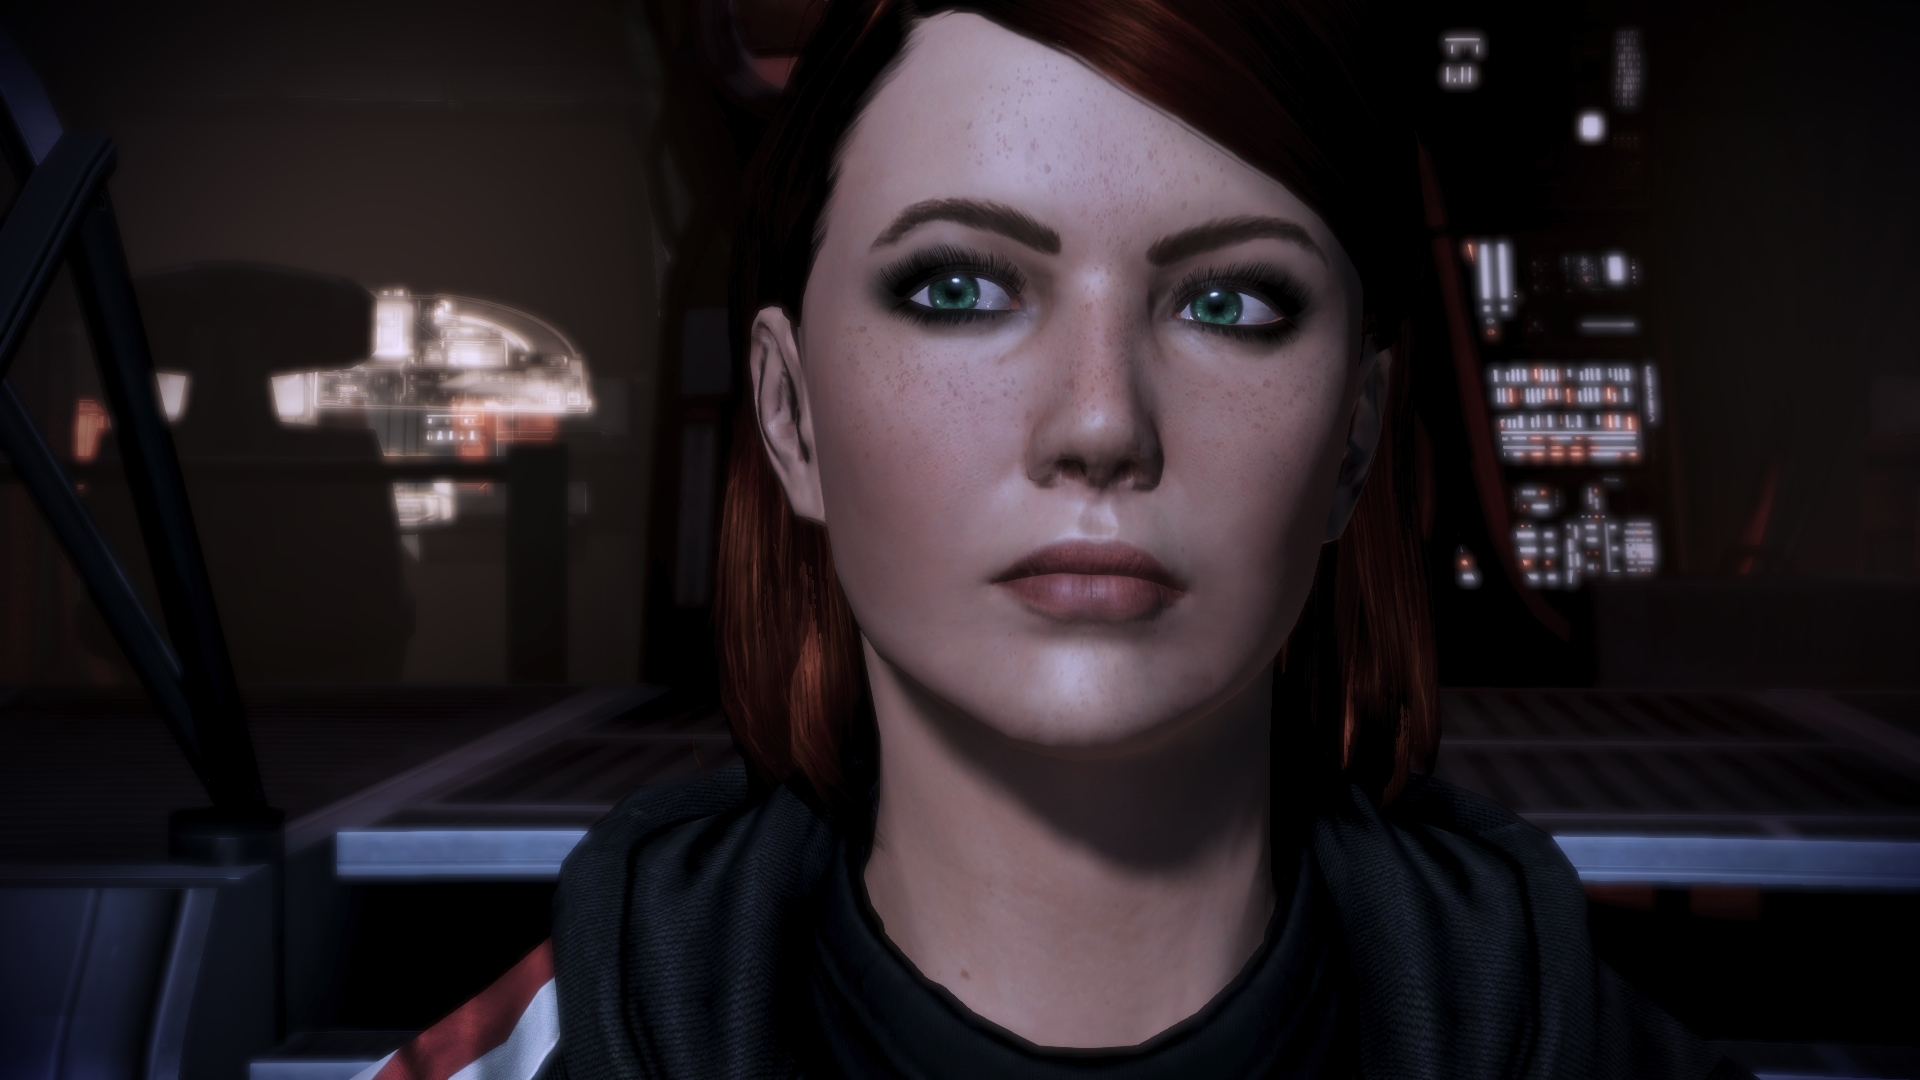 codes Femshep face